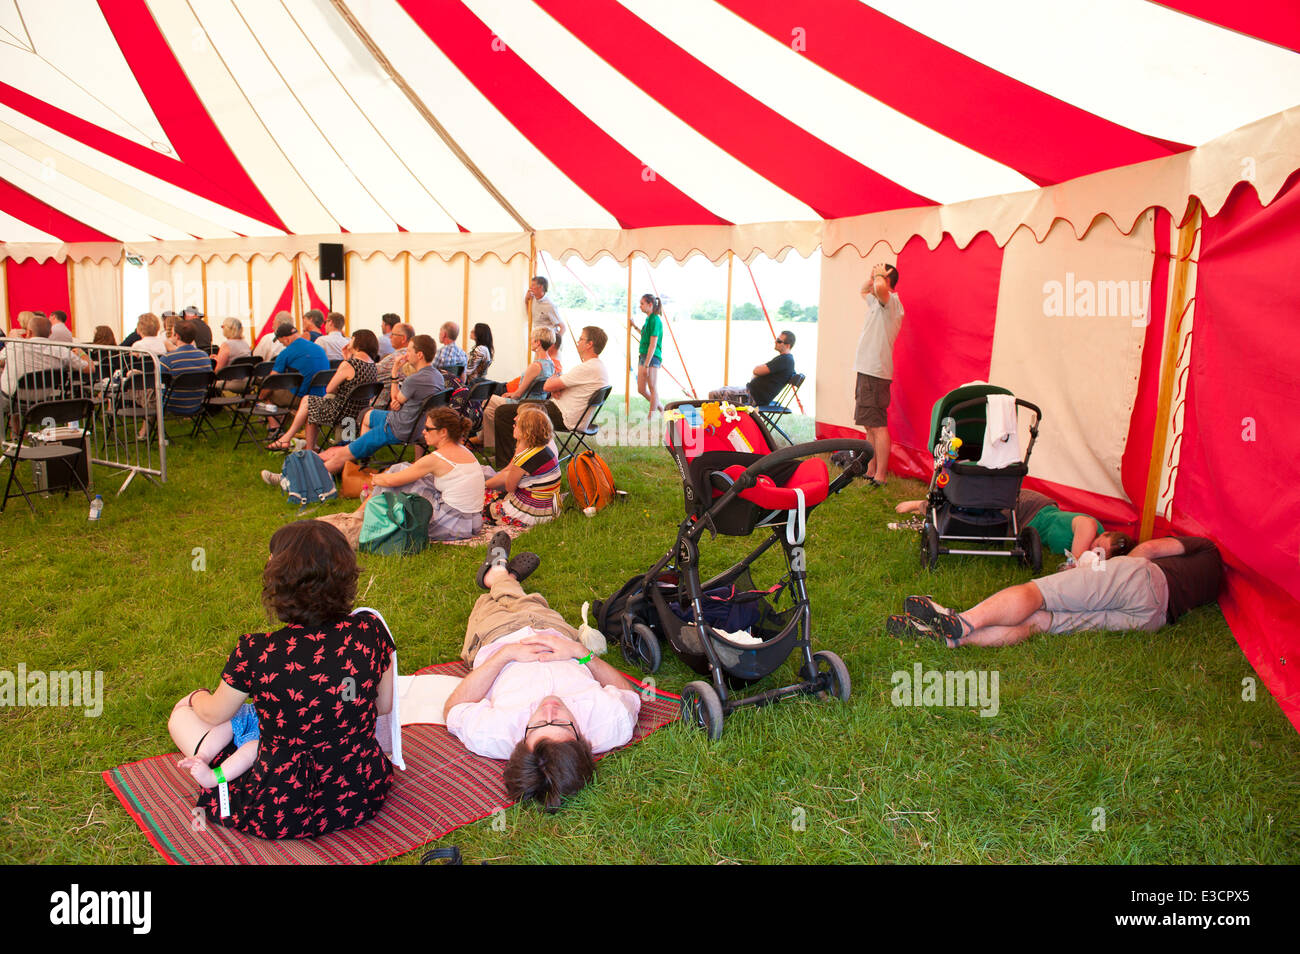 Llandeilo, Carmarthenshire, Wales, UK. 22nd June, 2014. Very hot and sunny for the last day at the Dinefwr Literary - Stock Image